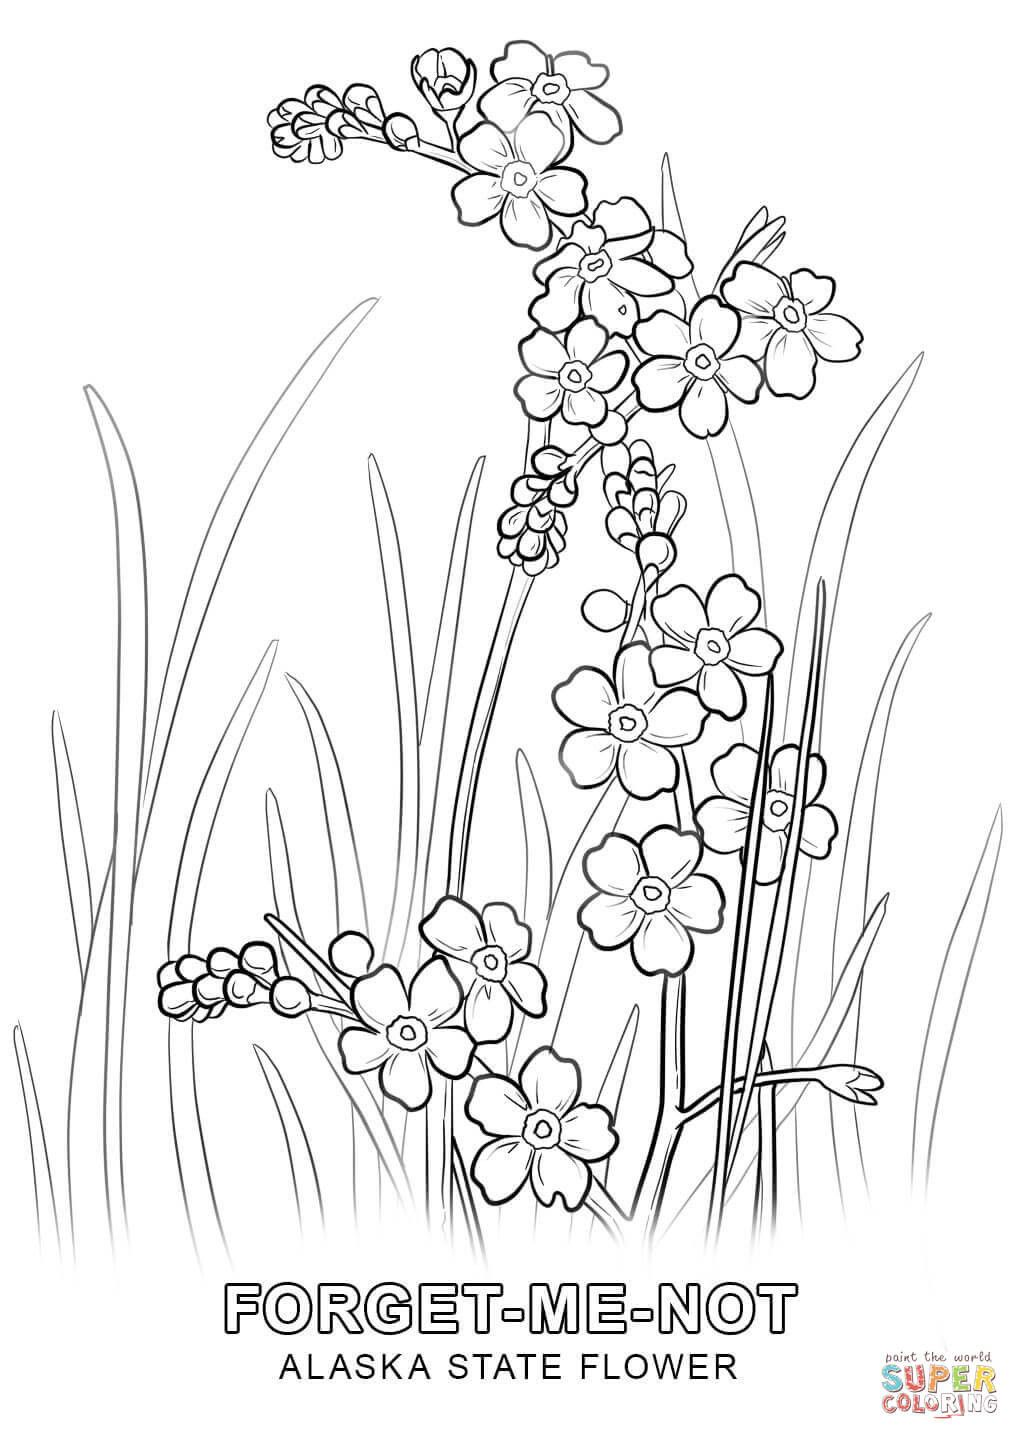 texas state flower texas state flower coloring page bluebonnet usa state texas flower